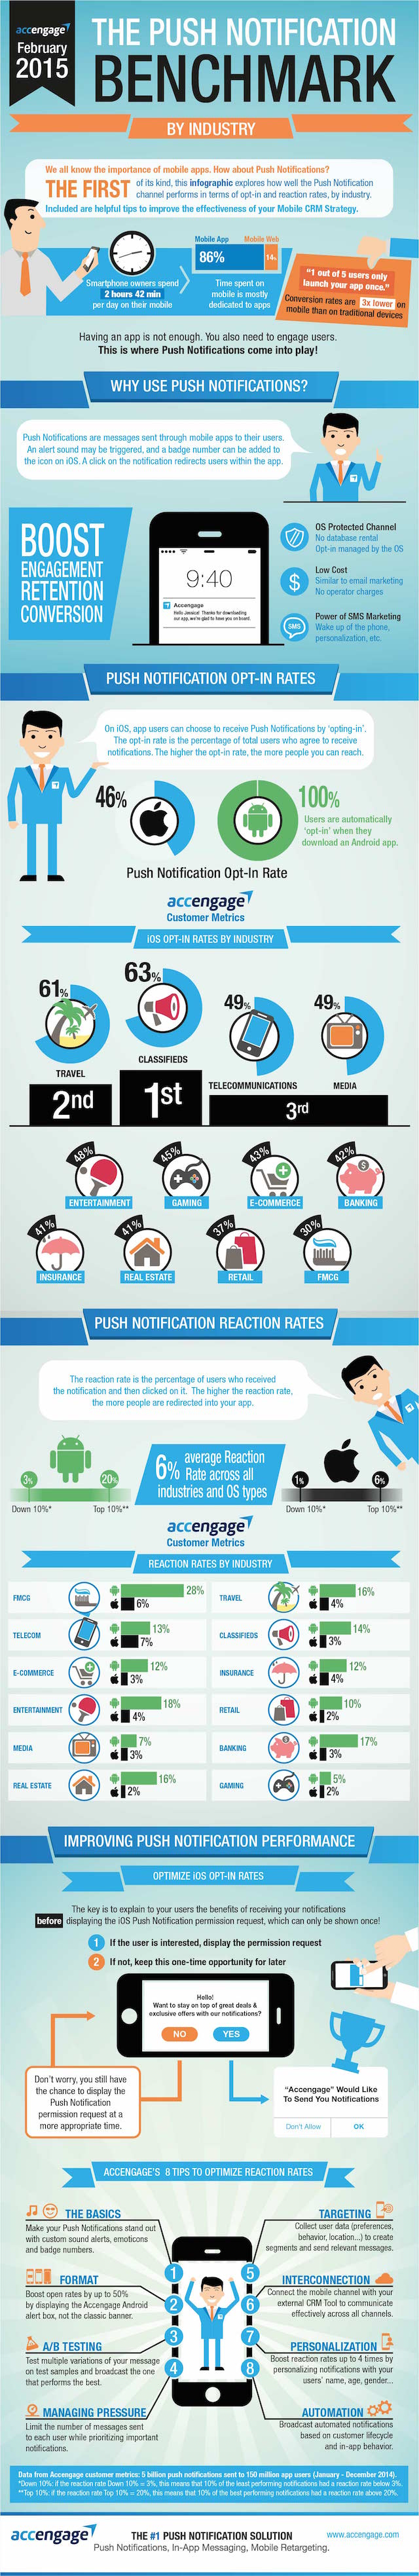 The-Push-Notification-Benchmark-Infographic-by-Accengage